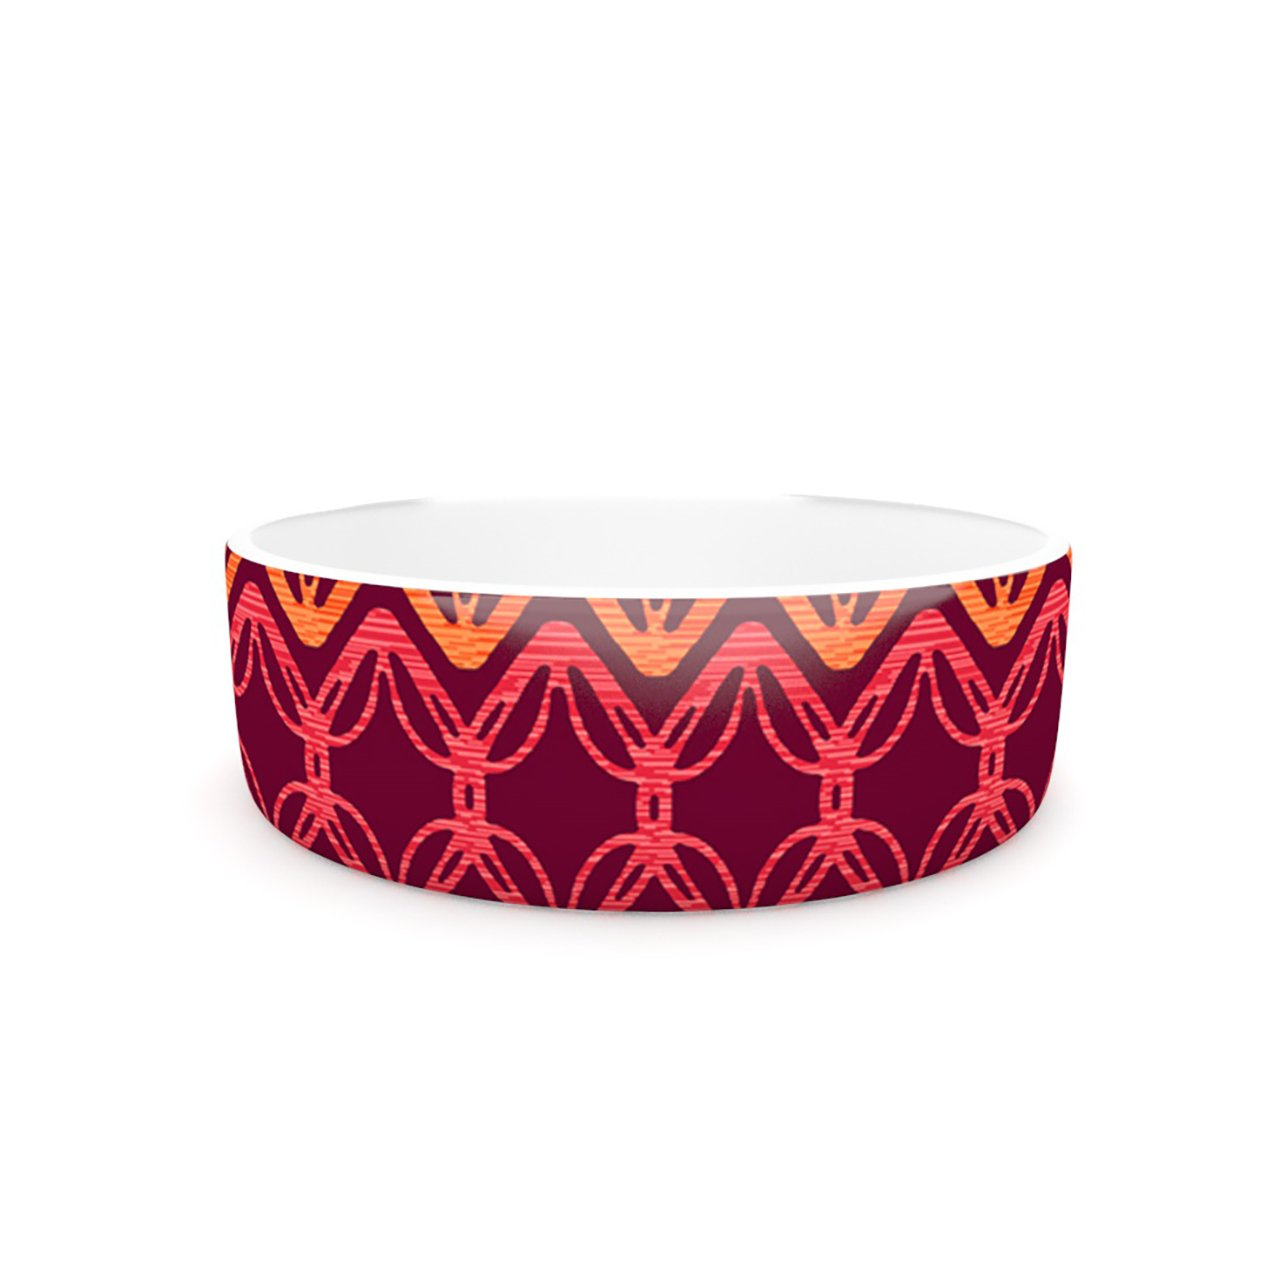 Kess InHouse Suzie Tremel Rick Rack  Pet Bowl, 7-Inch, Red orange